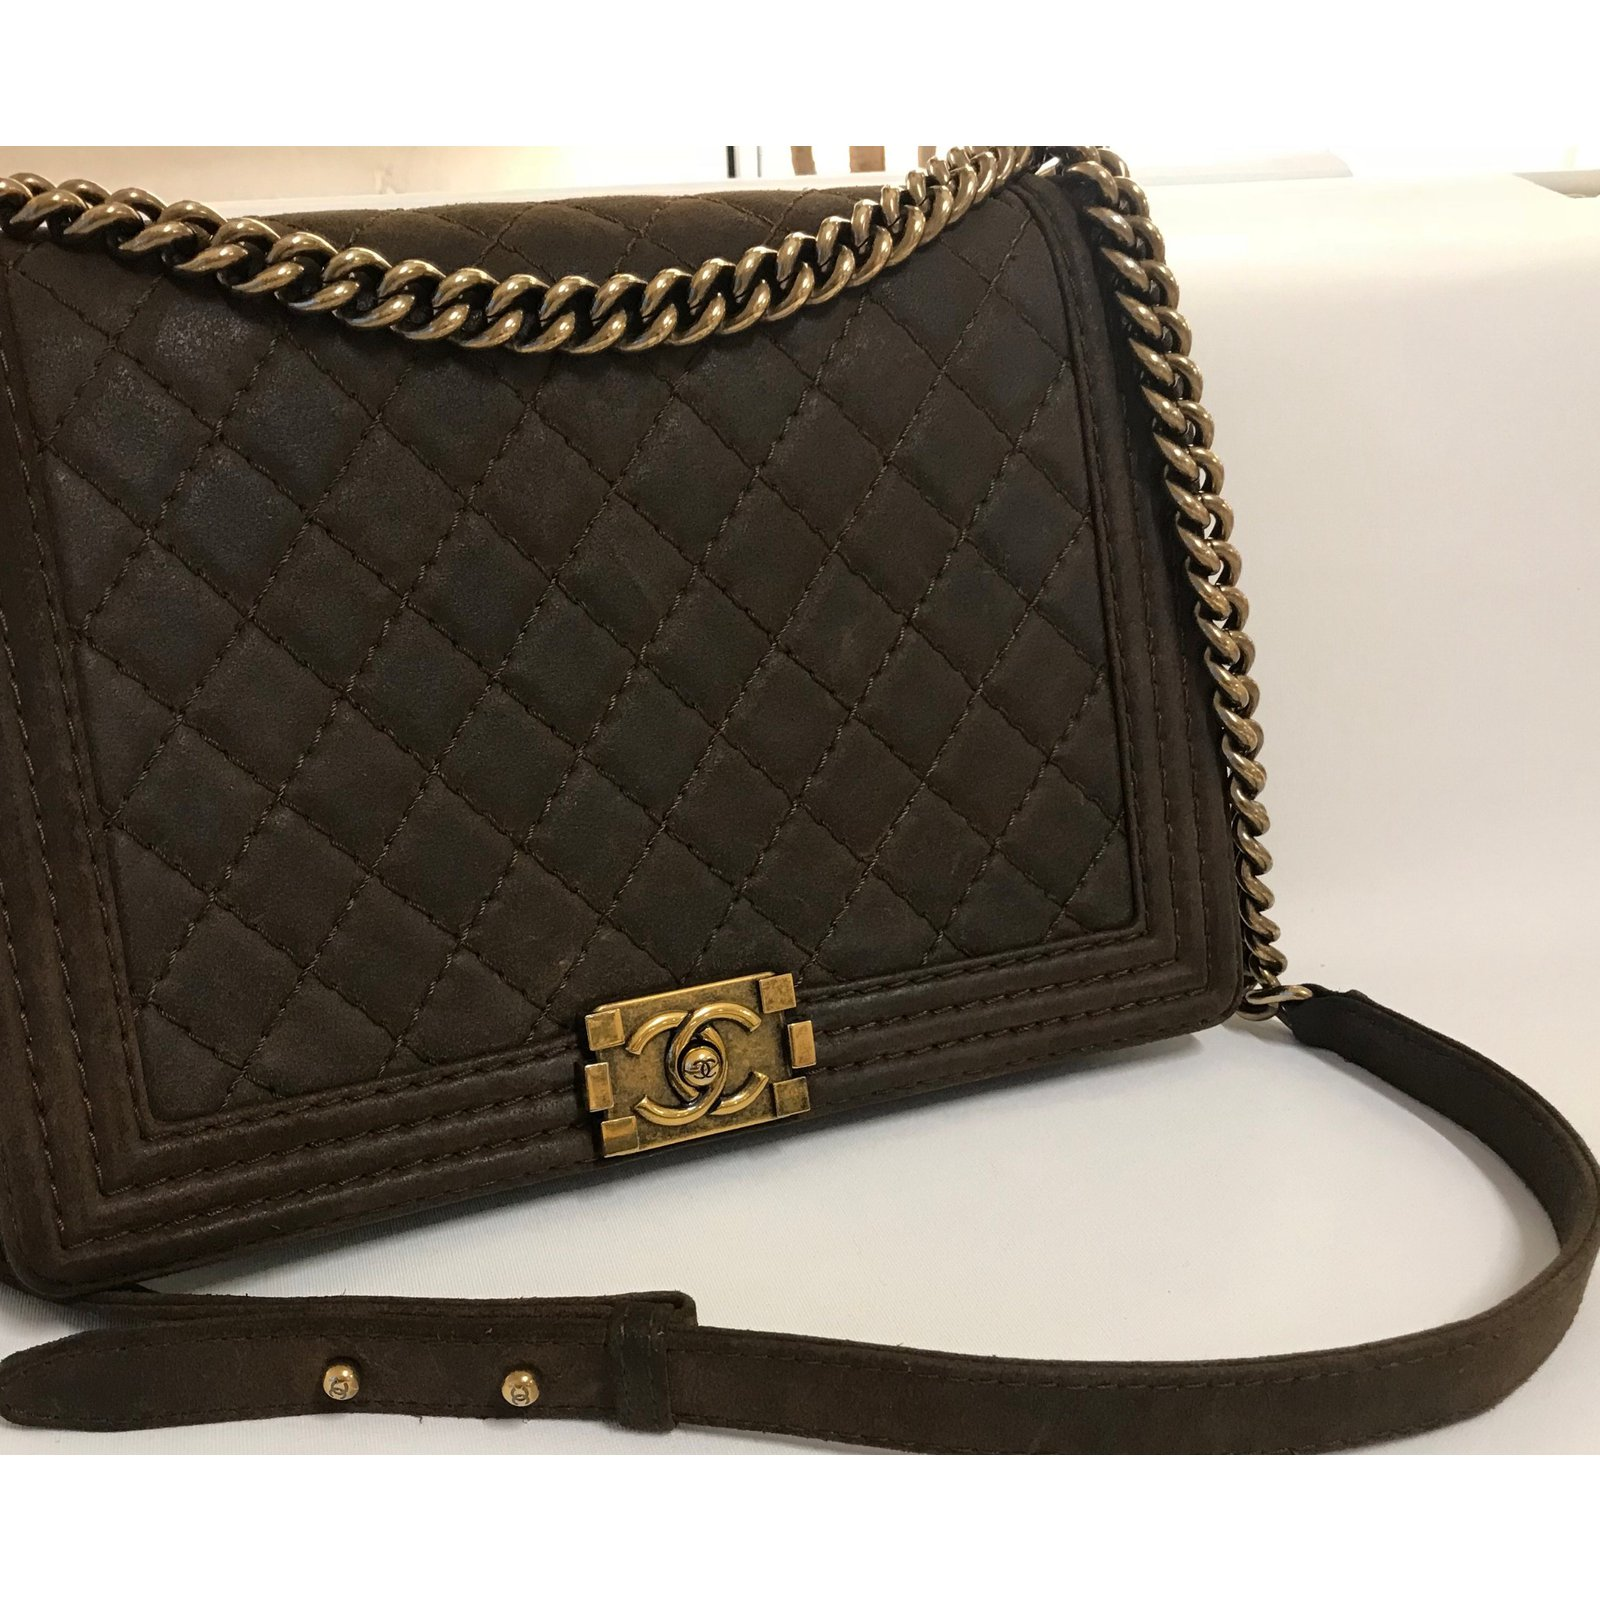 efd2fc2f4e93 Chanel Distressed brown Chanel Boy Large Bag from Pre-Fall 2013 Collection  Paris-Edimbourg Metiers D'art Handbags Leather Brown ref.50653 - Joli Closet